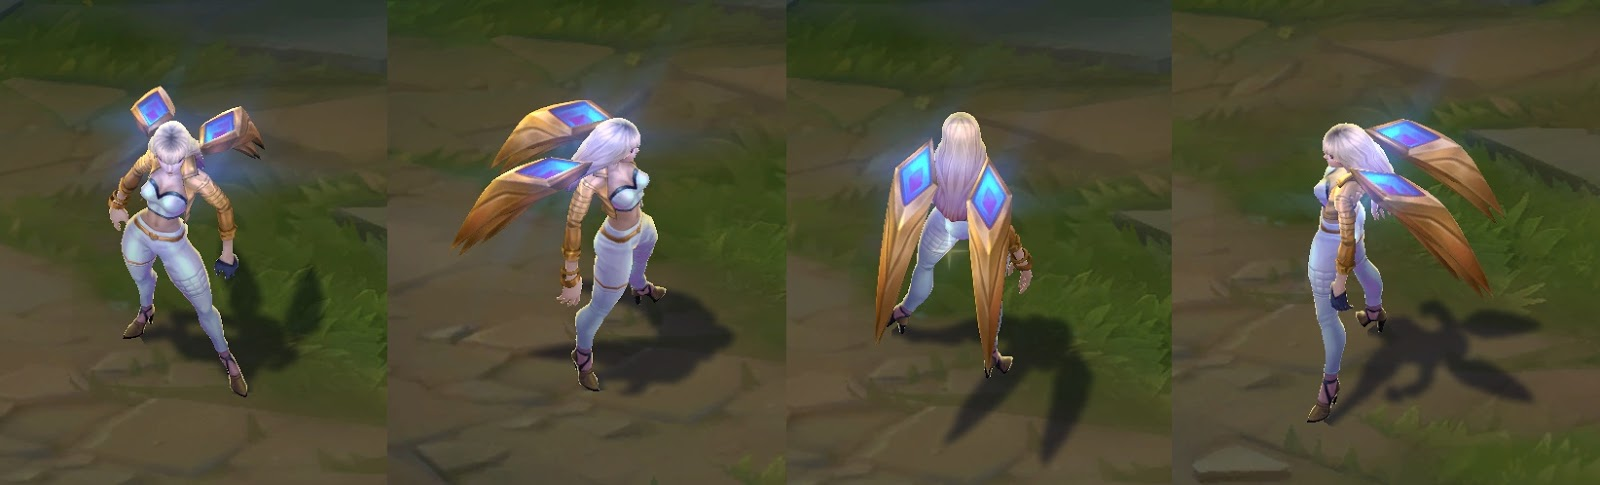 League Of Legends Goes K-Pop With New Champion Skins - EXP GG